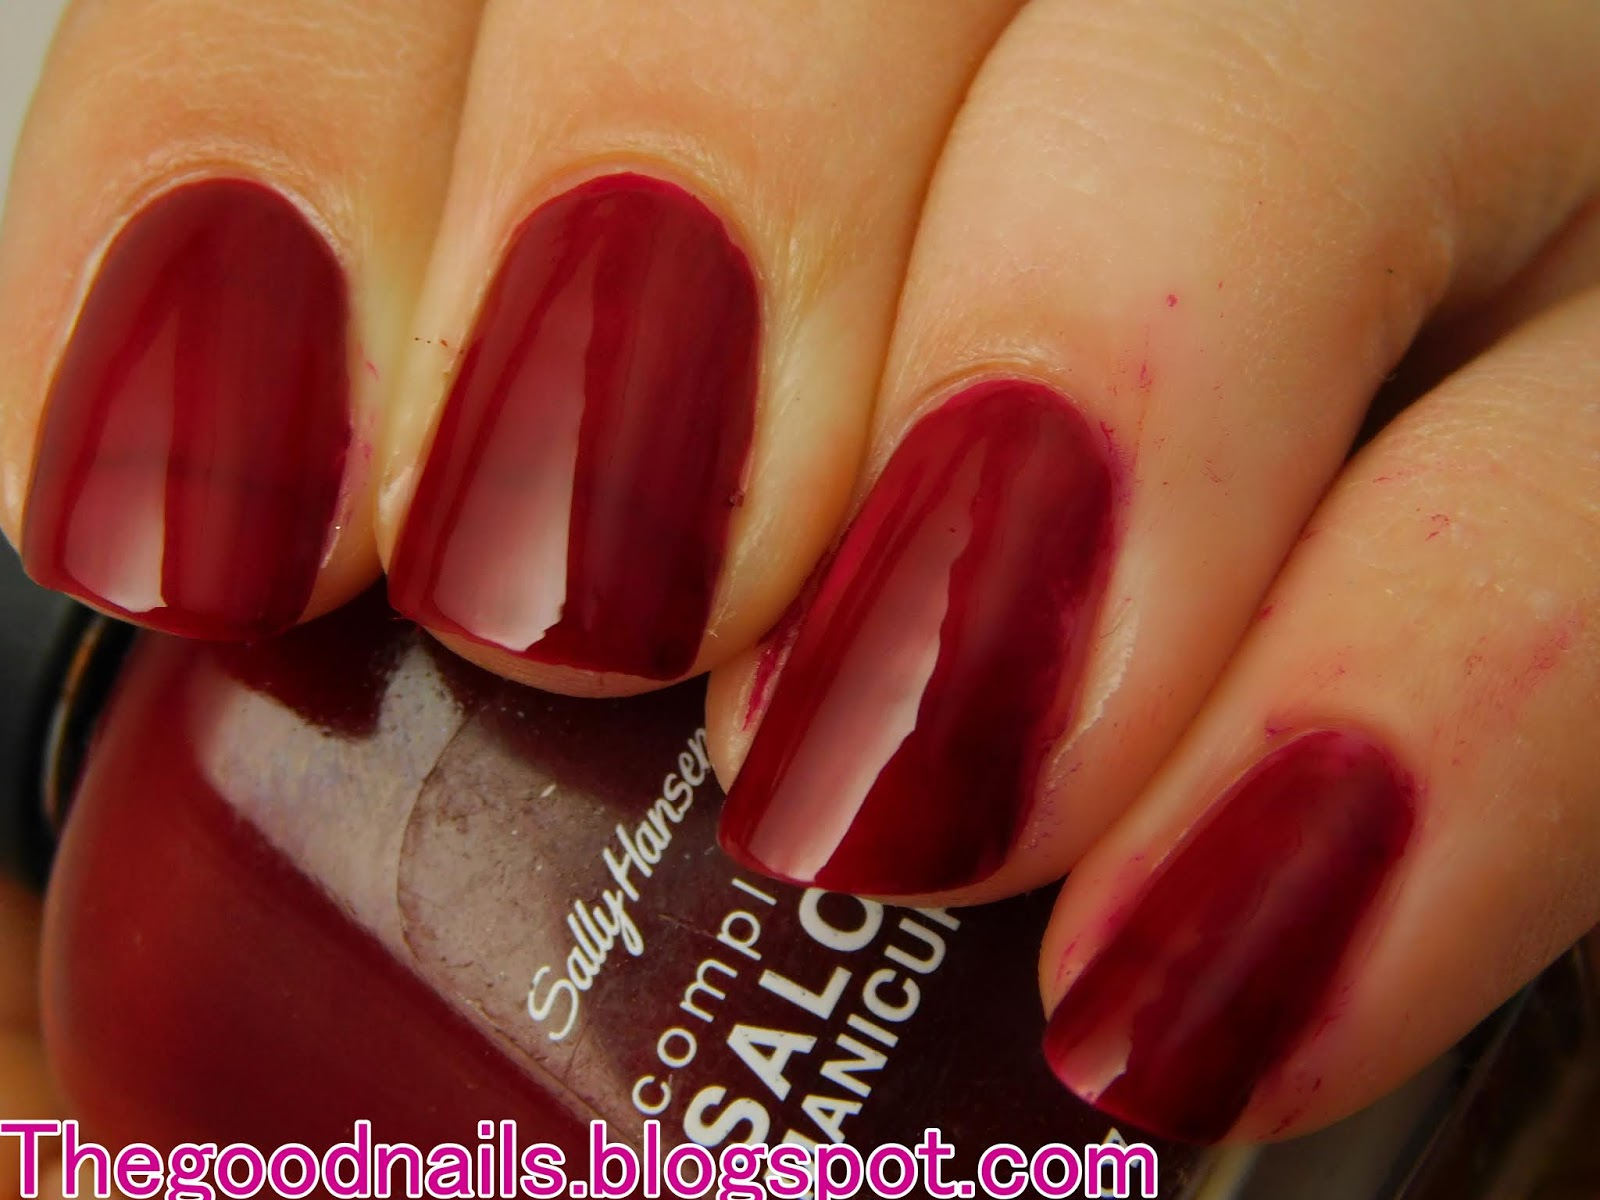 Sally Hansen 'Red Zin' Red Nail Polish Swatch and Review